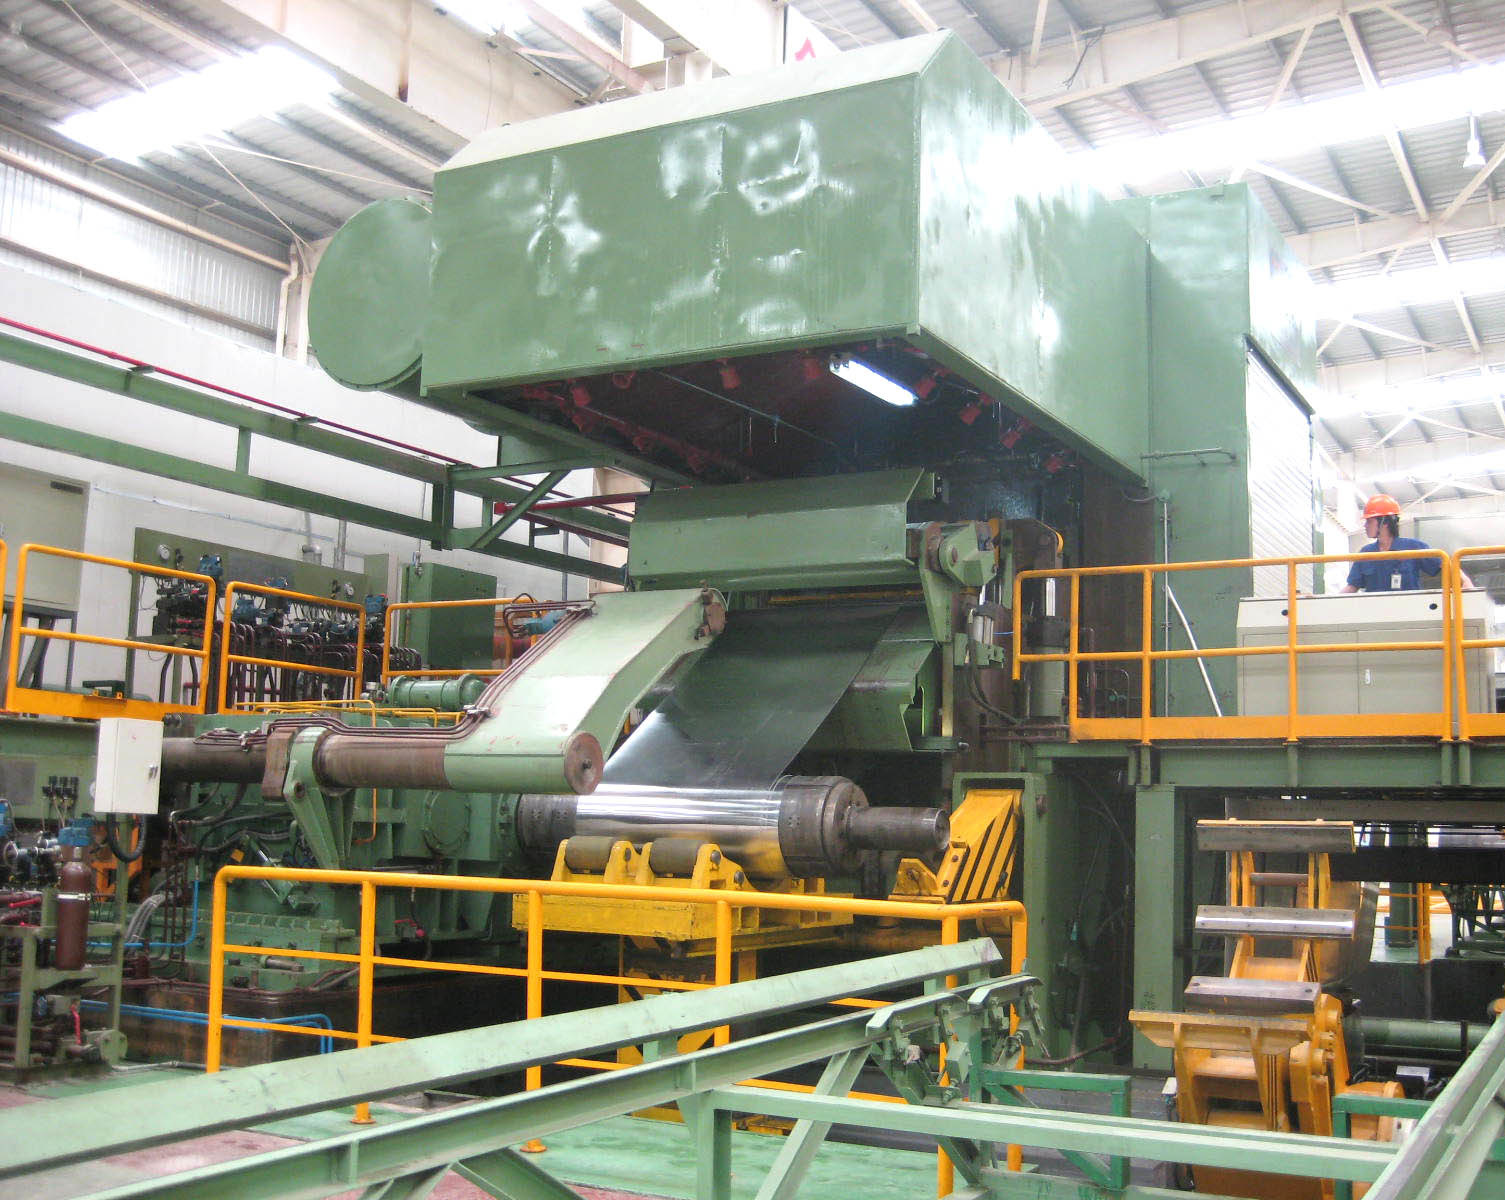 latest report china aluminum rolling industry report Industrial, manufacturing & heavy industry market news rolling bearing industry report base on global market status in 2018 explored in latest research.